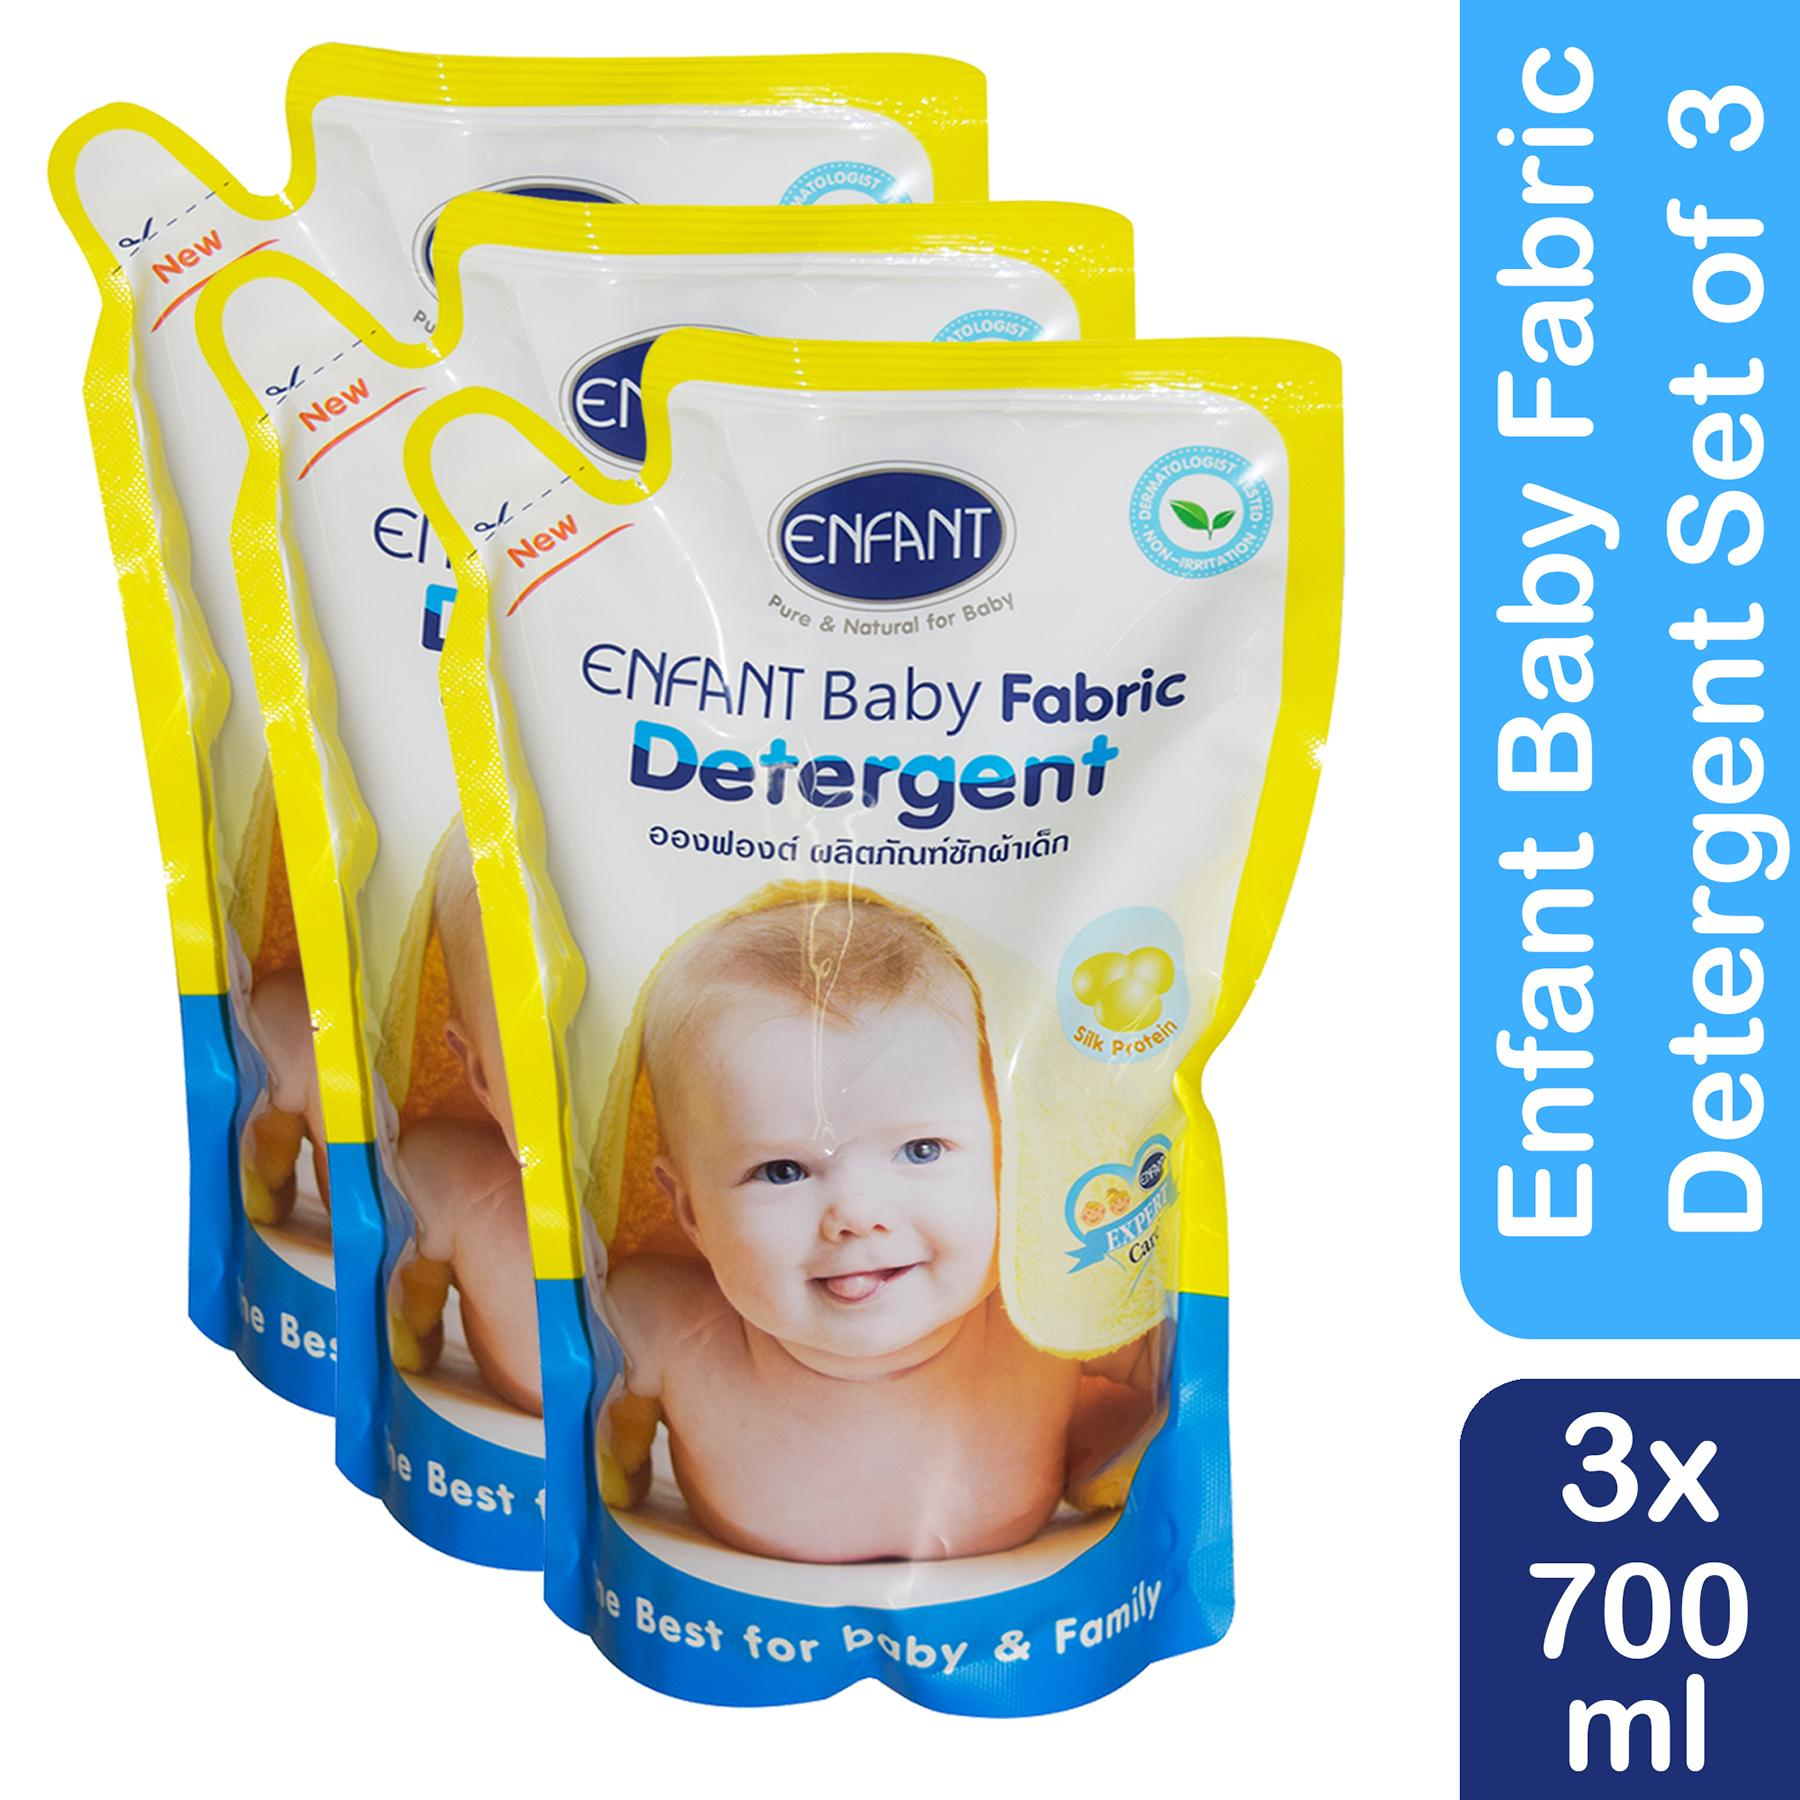 Enfant Extra Care Fabric Detergent 700 ml (pack of 3)